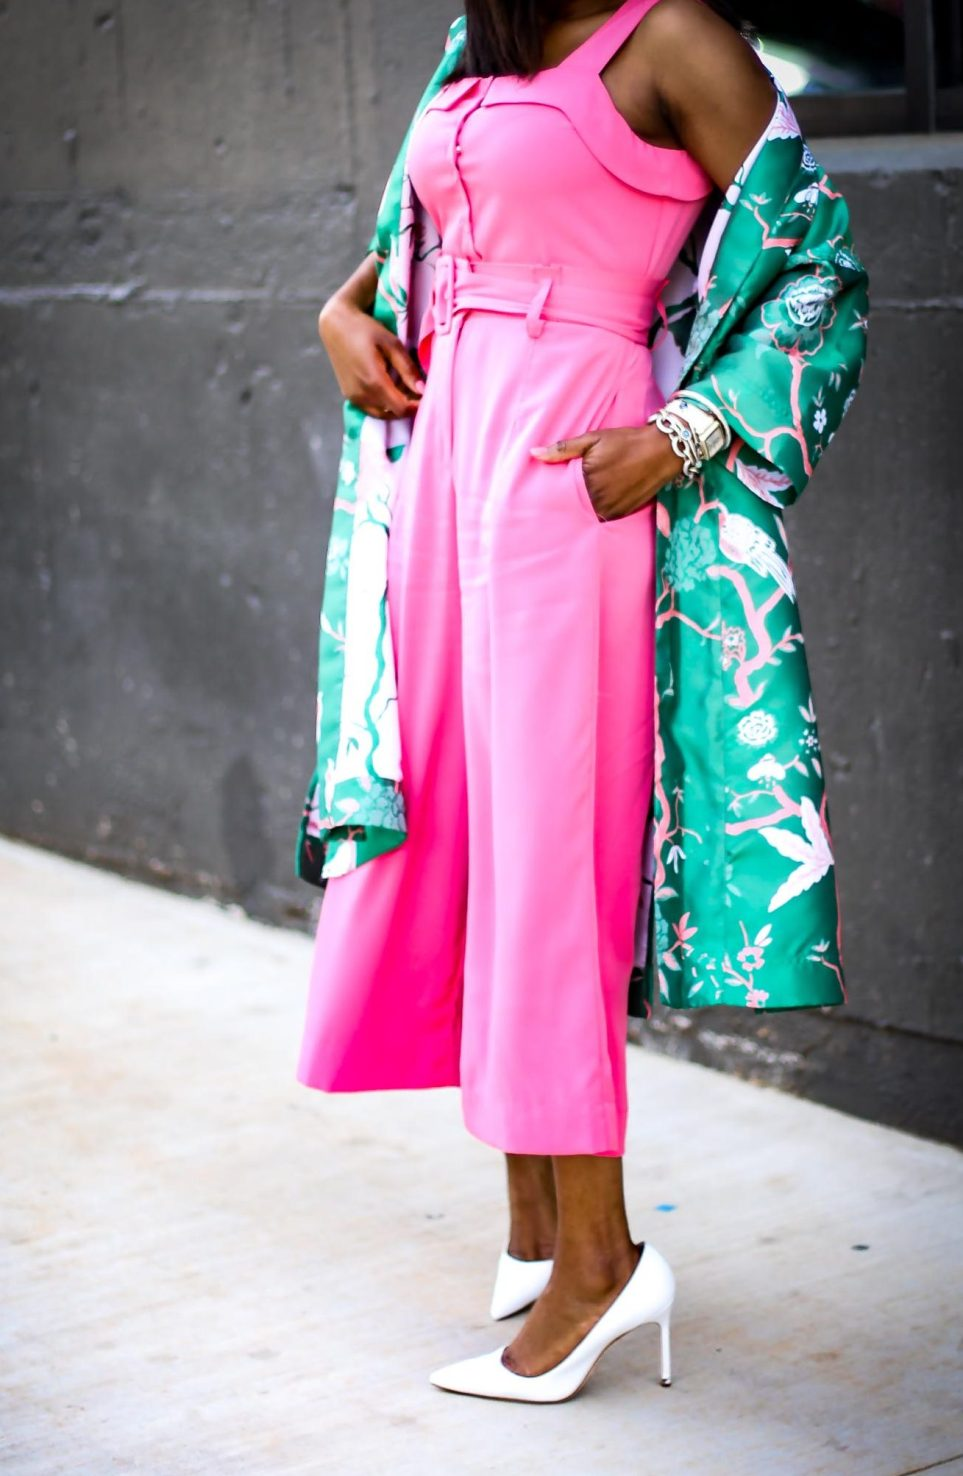 Atlanta fashion blogger wearing Gabrielle union for New York and Compnay spring pink jumpsuit and green floral kimono and white pumps by manolo blahink-5